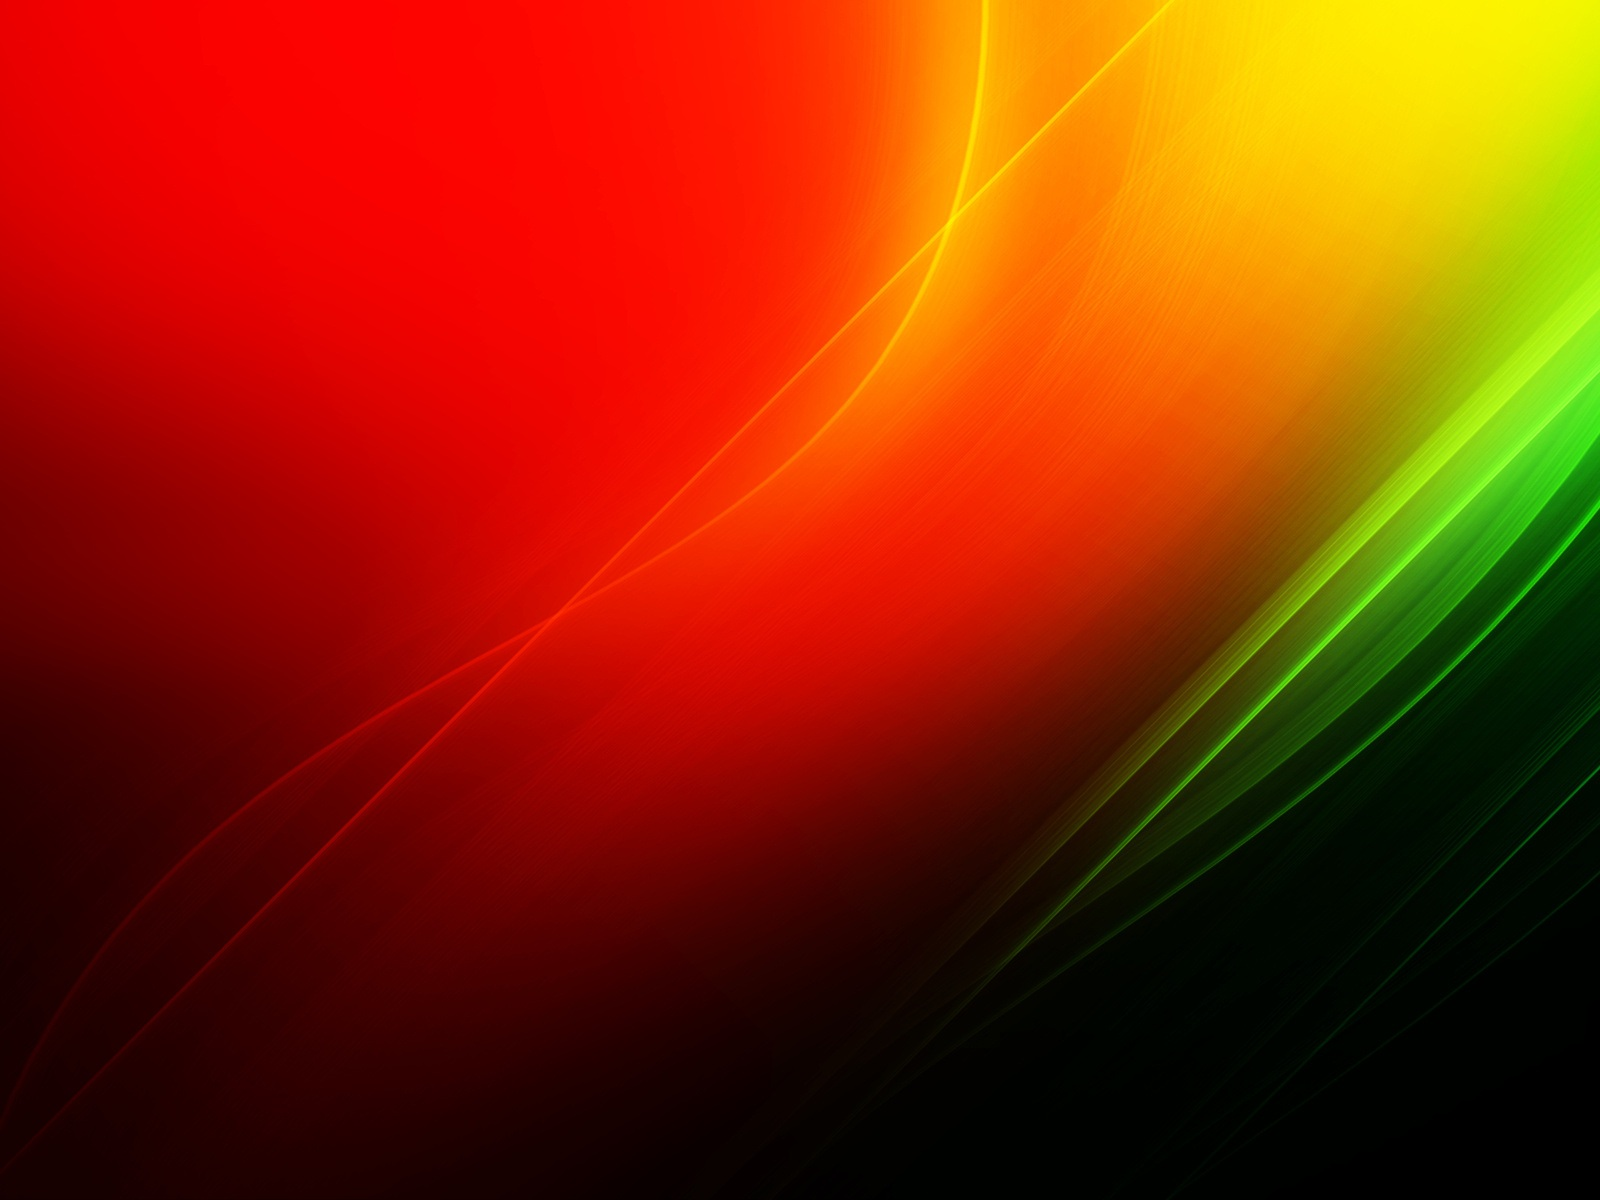 Red and Green Wallpaper - WallpaperSafari